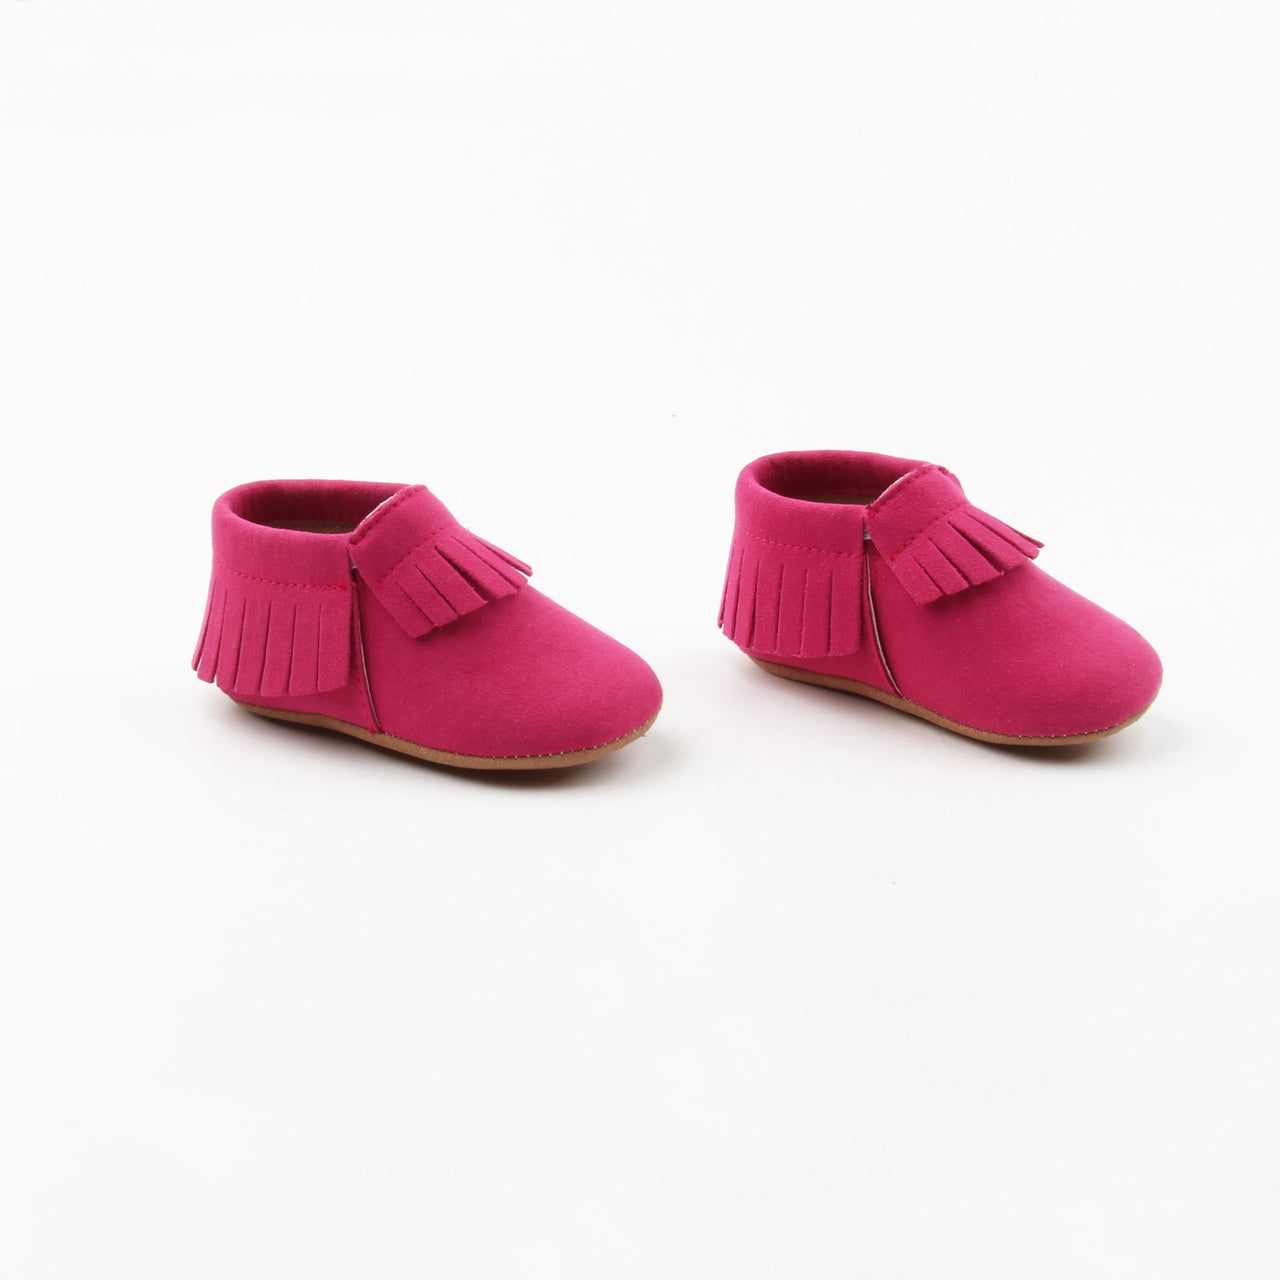 Hot Pink Moccasins